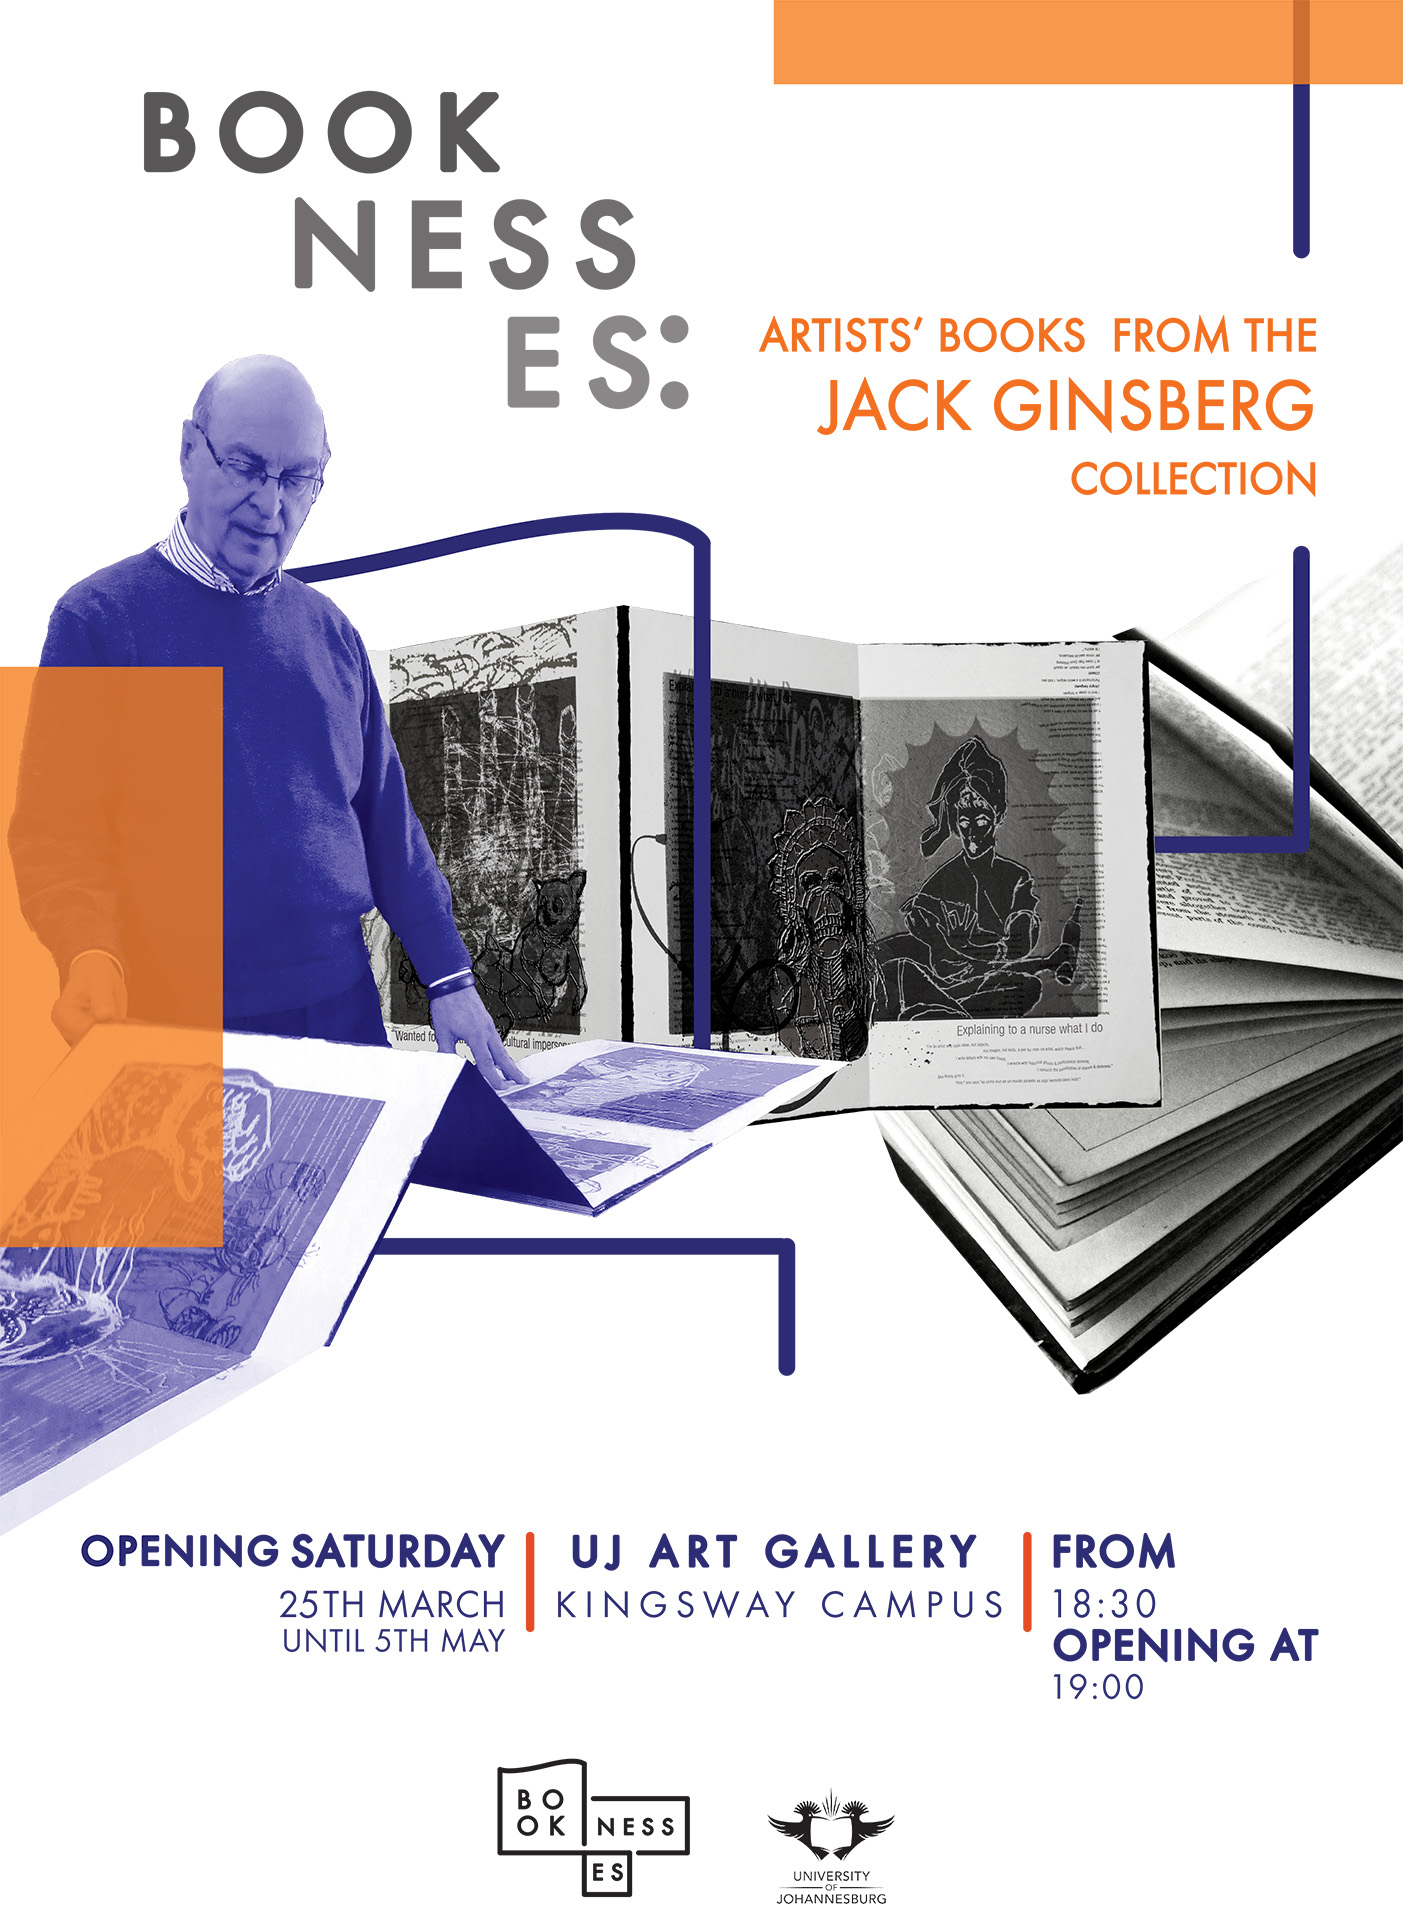 Click the image for a view of: Official poster for the exhibition Booknesses: Artists' Books from the Jack Ginsberg Collection - UJ Art Gallery till 5 May